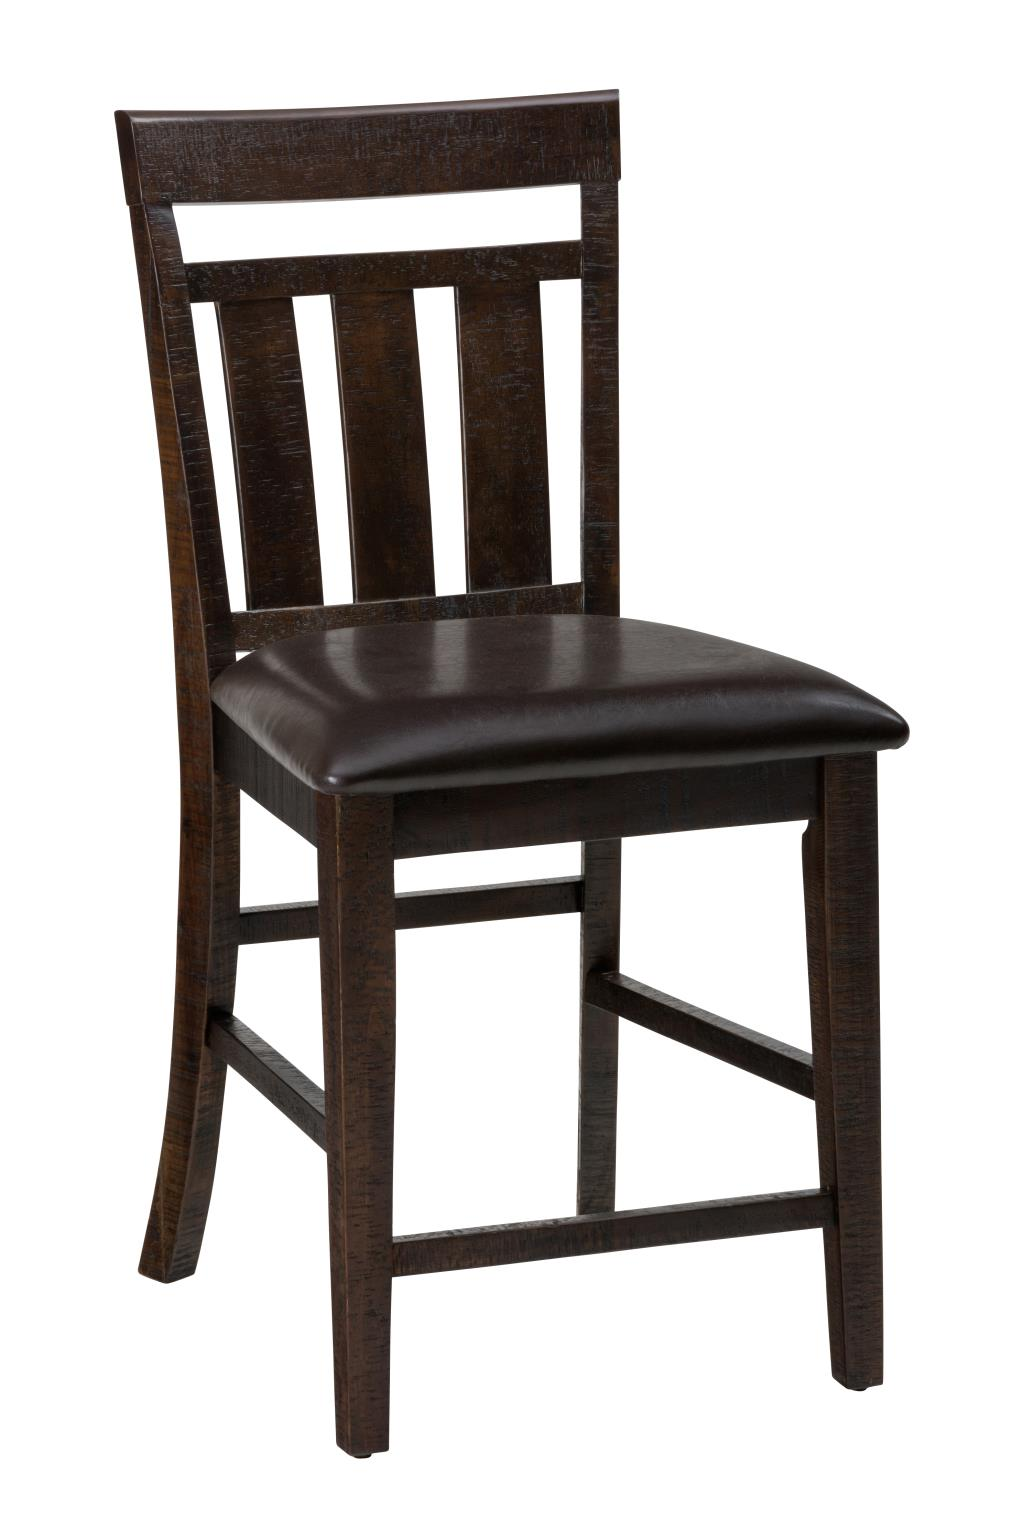 Kona Grove Counter Stool - Lifestyle Furniture